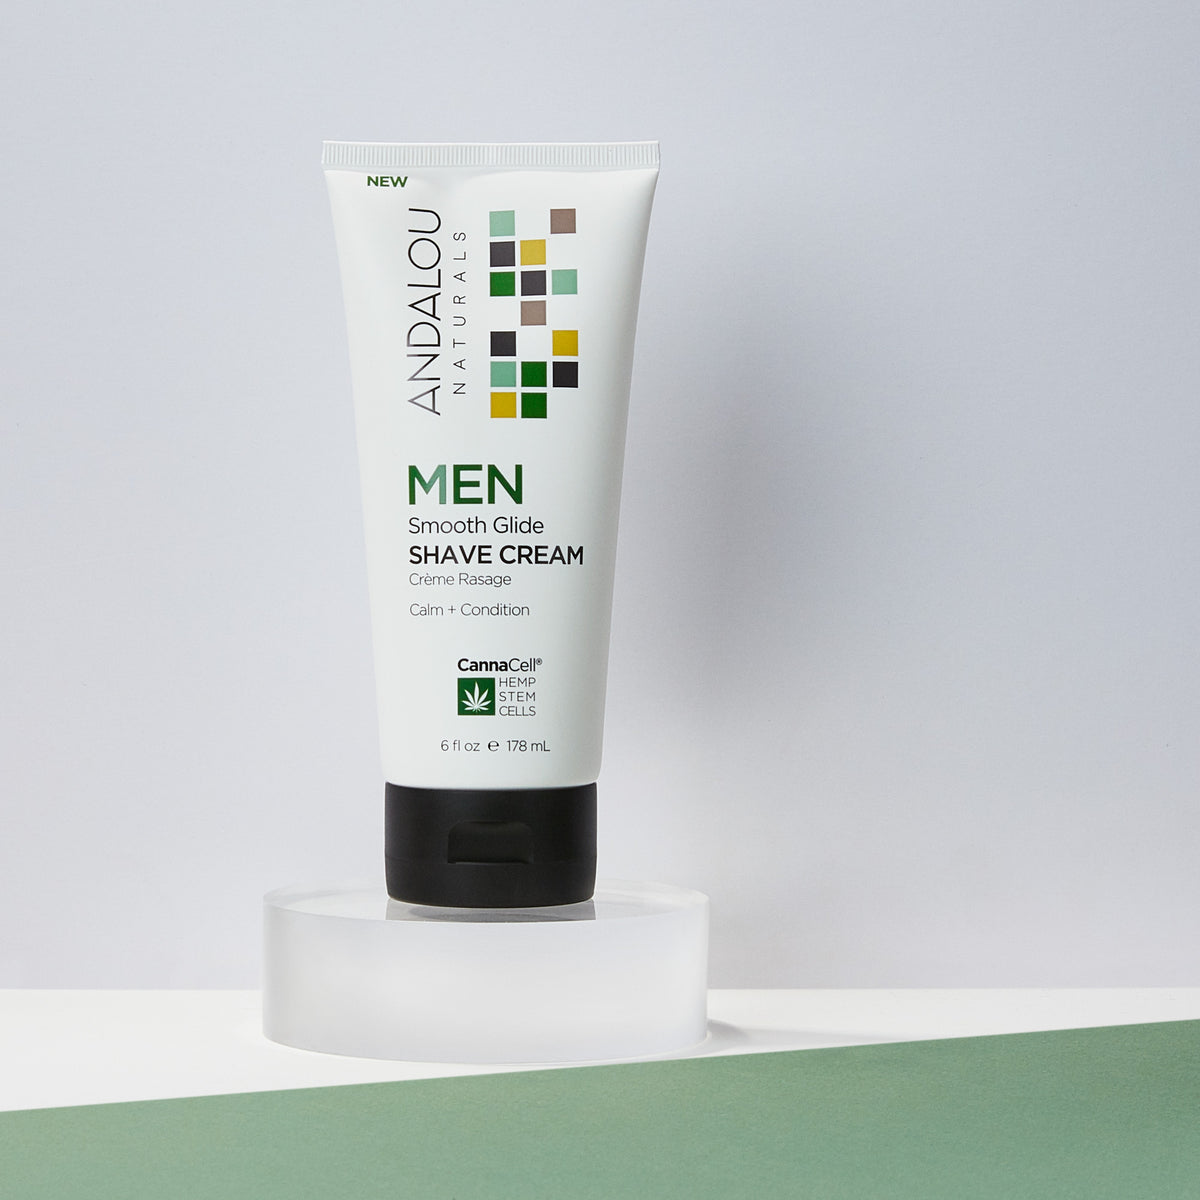 MEN Smooth Glide Shave Cream - Andalou Naturals US